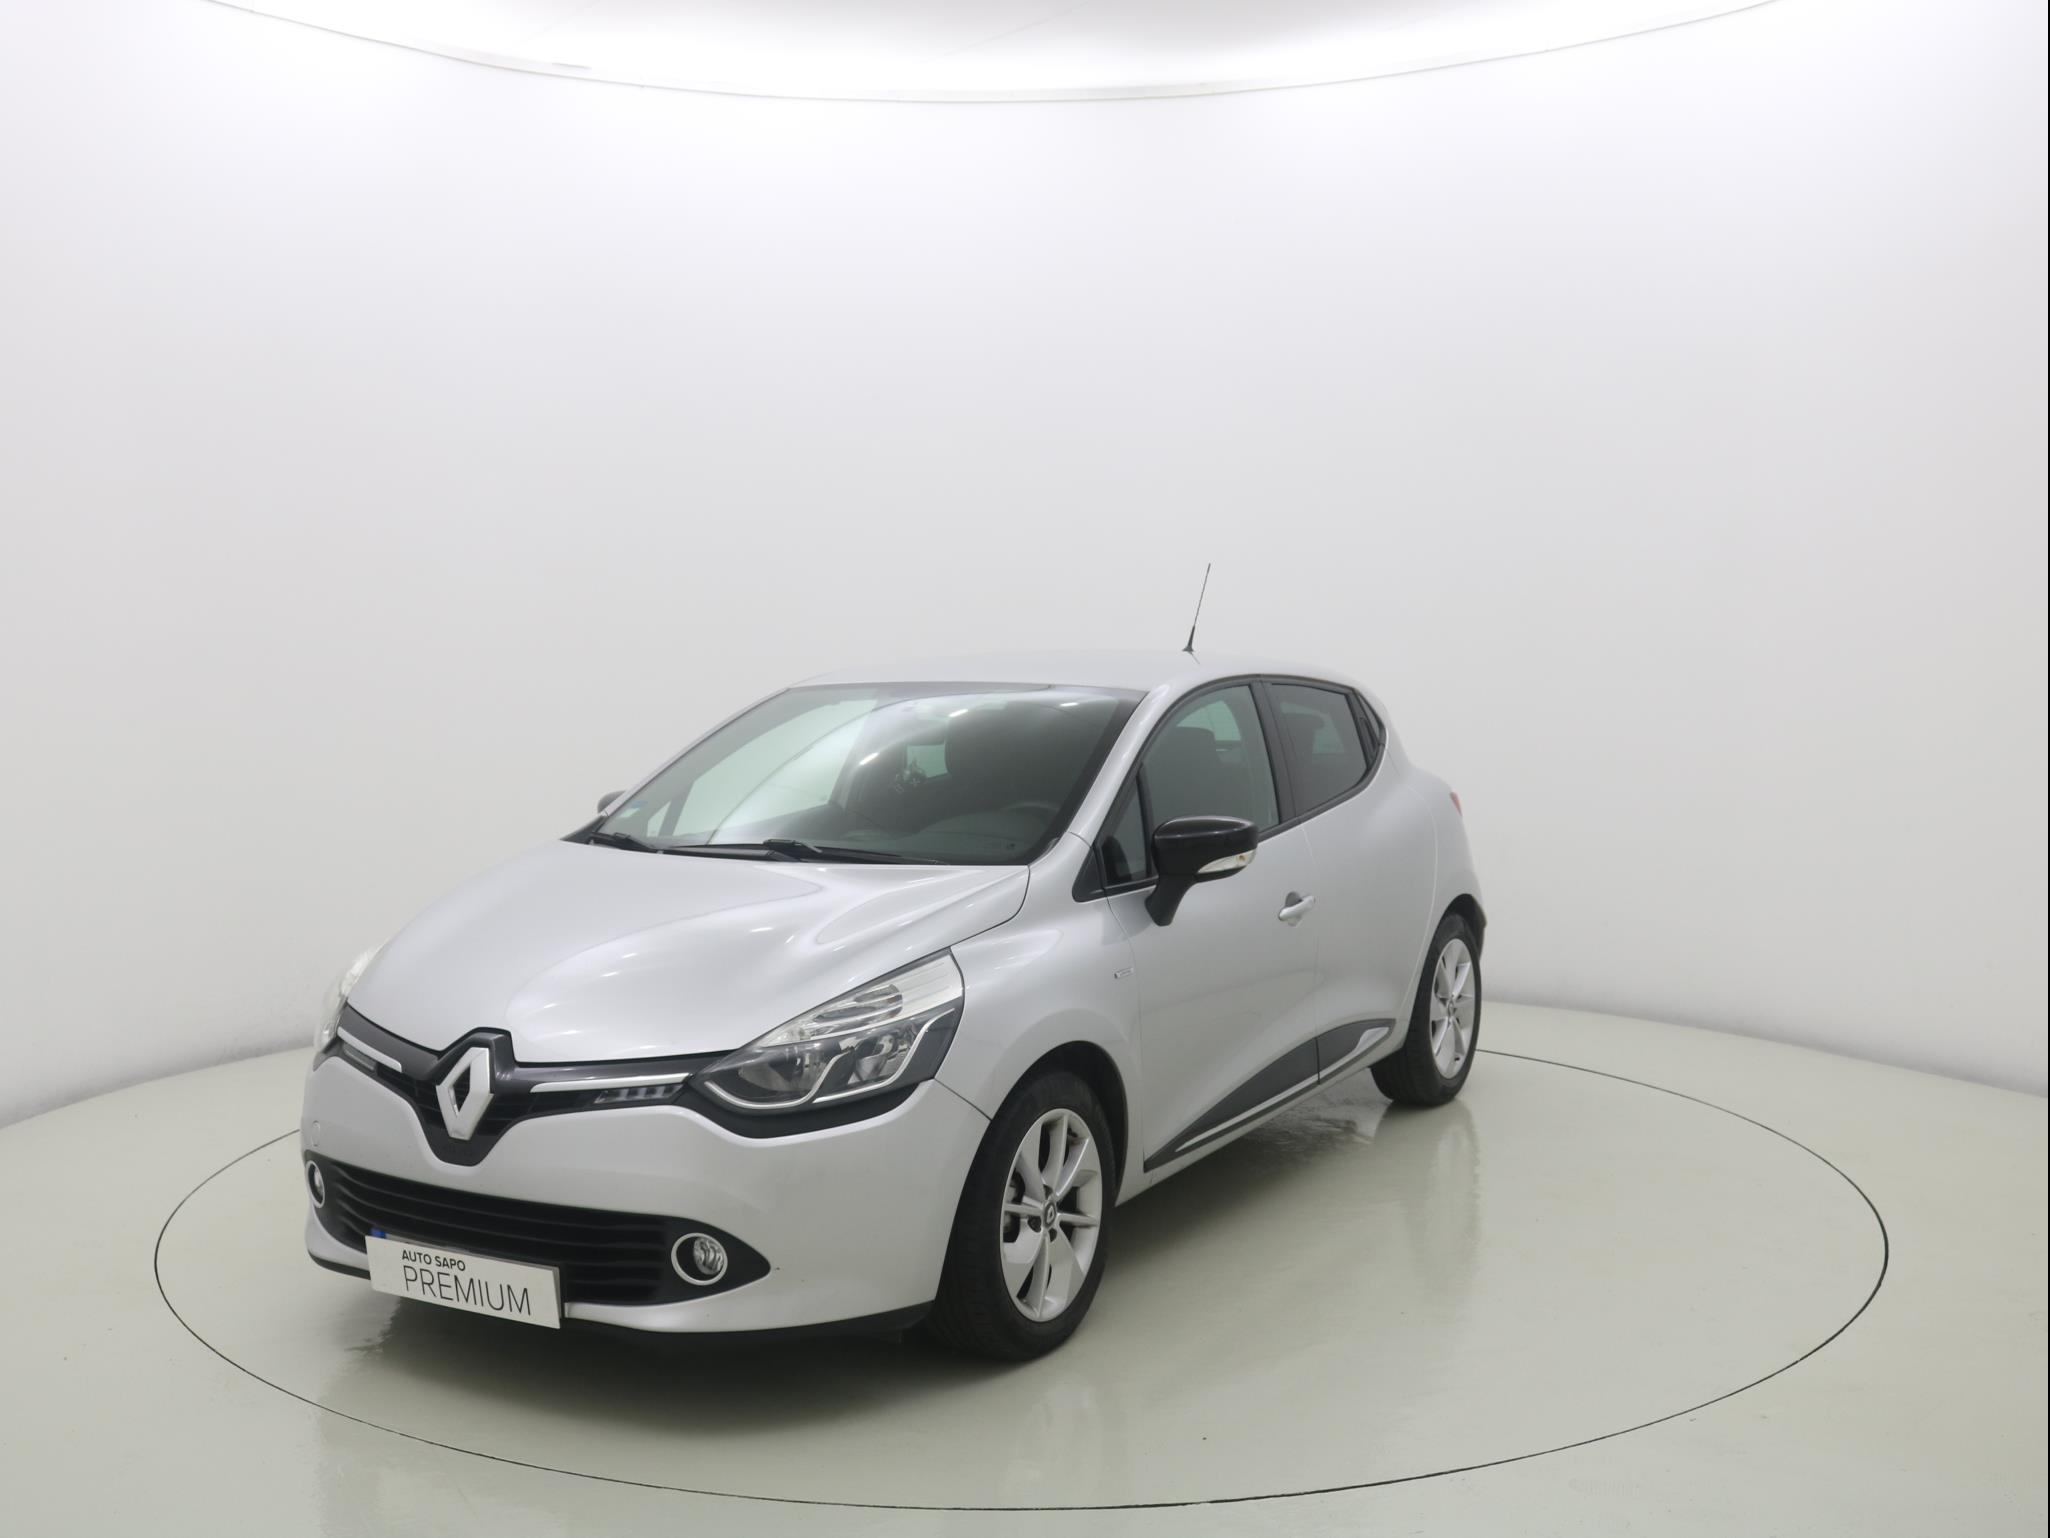 Renault Clio 0.9 Tce Limited Edition 90cv 5p